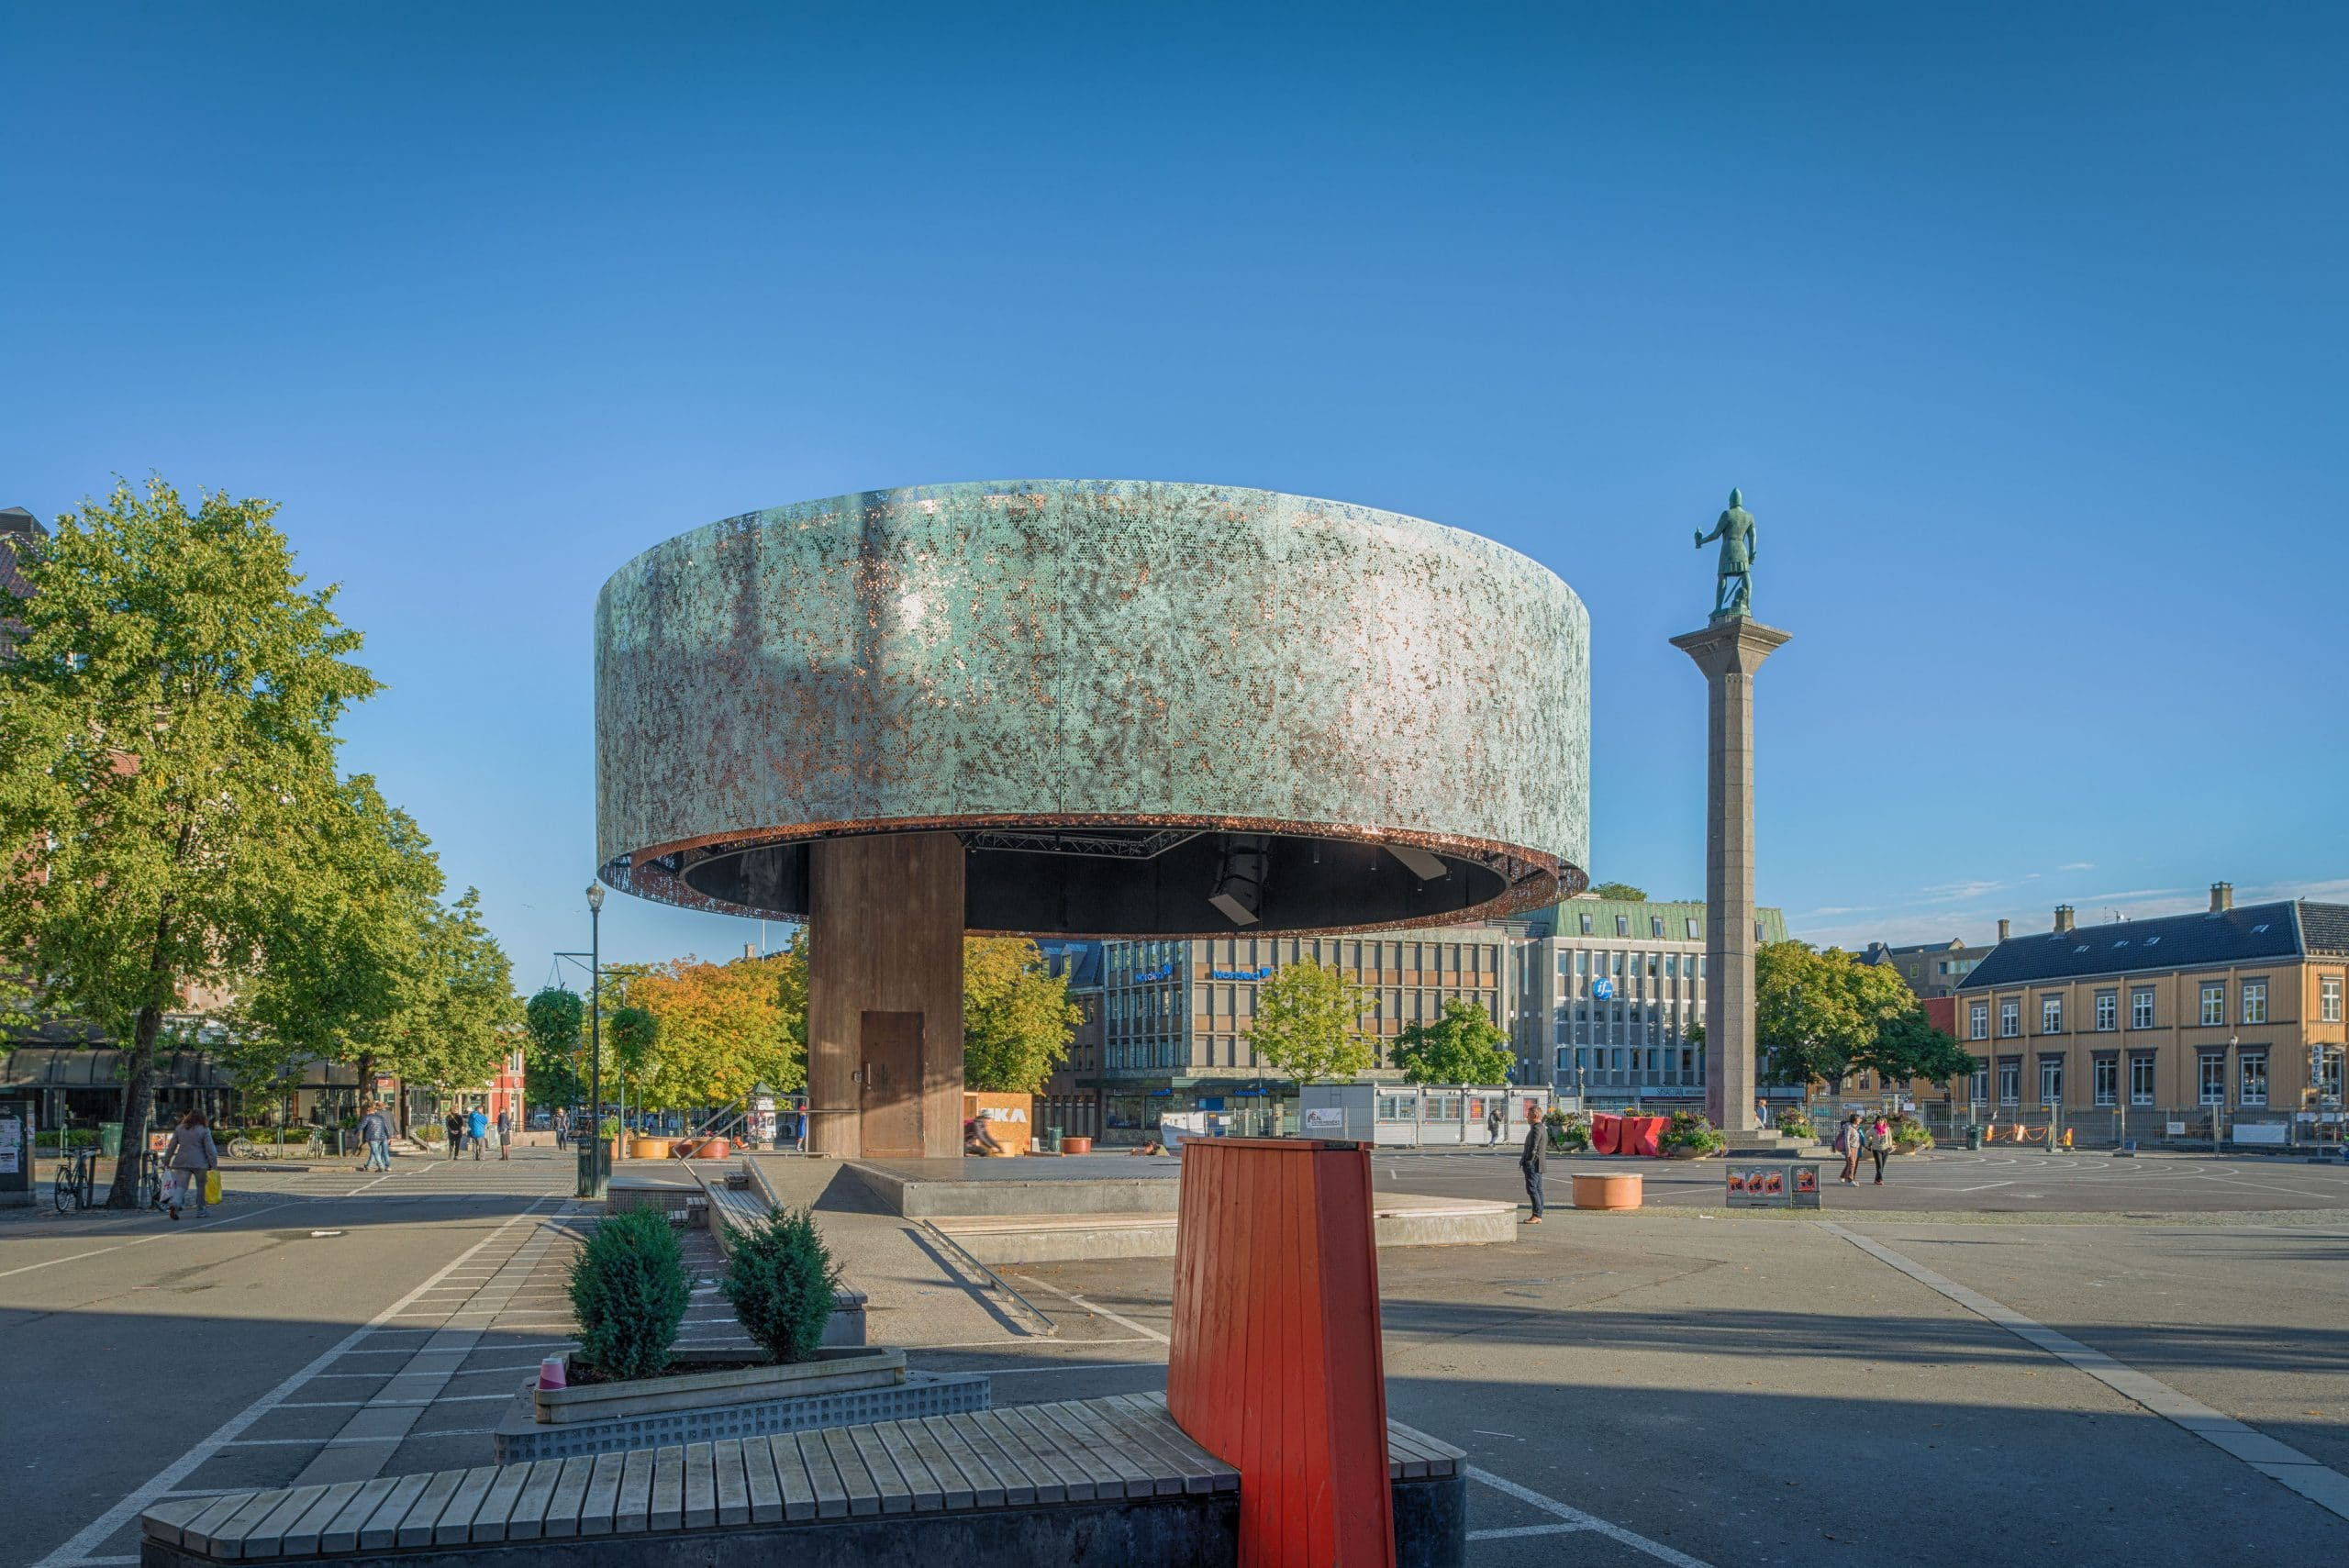 Communal Stage located in Trondheim, Norway. The circular walls are clad from Nordig Green copper.